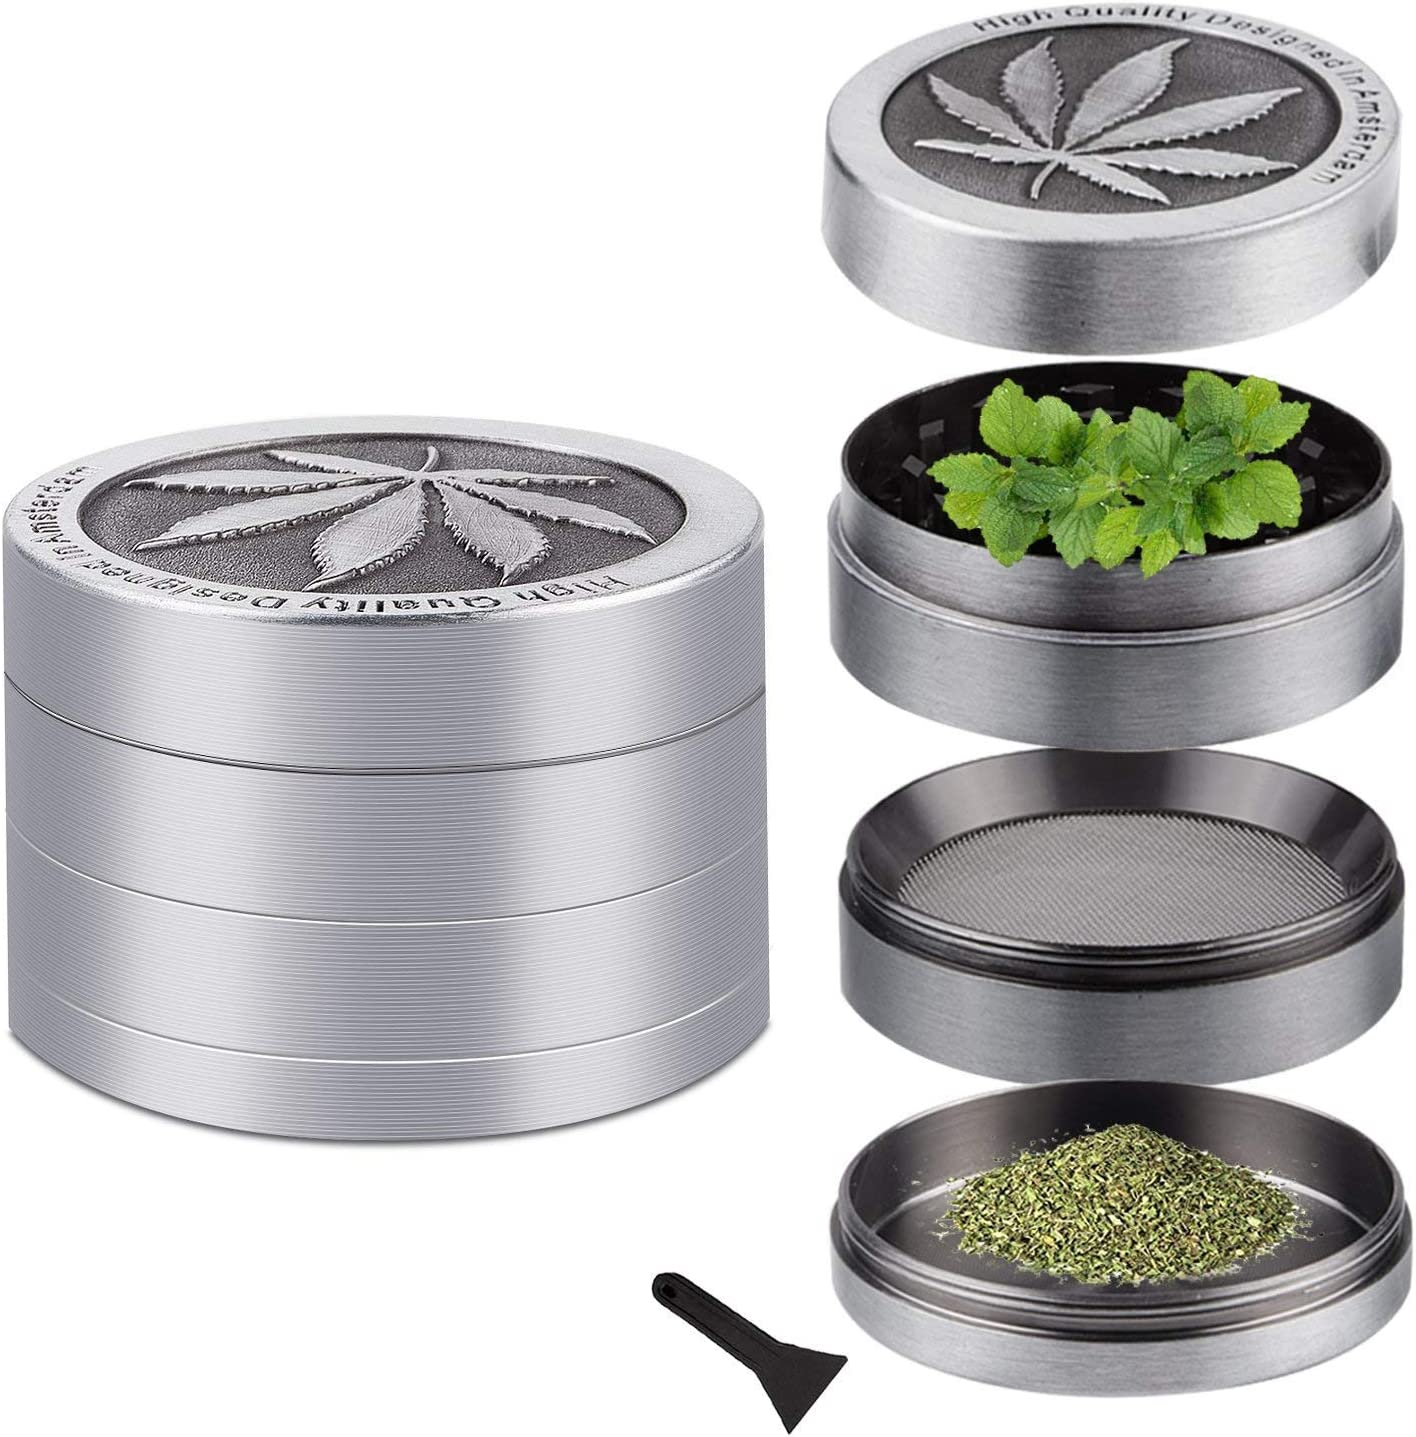 GIVBRO Grinder Small 4 Pieces Premium Zinc Alloy Grinder with a Unique Cabinet Door for Easy Collection